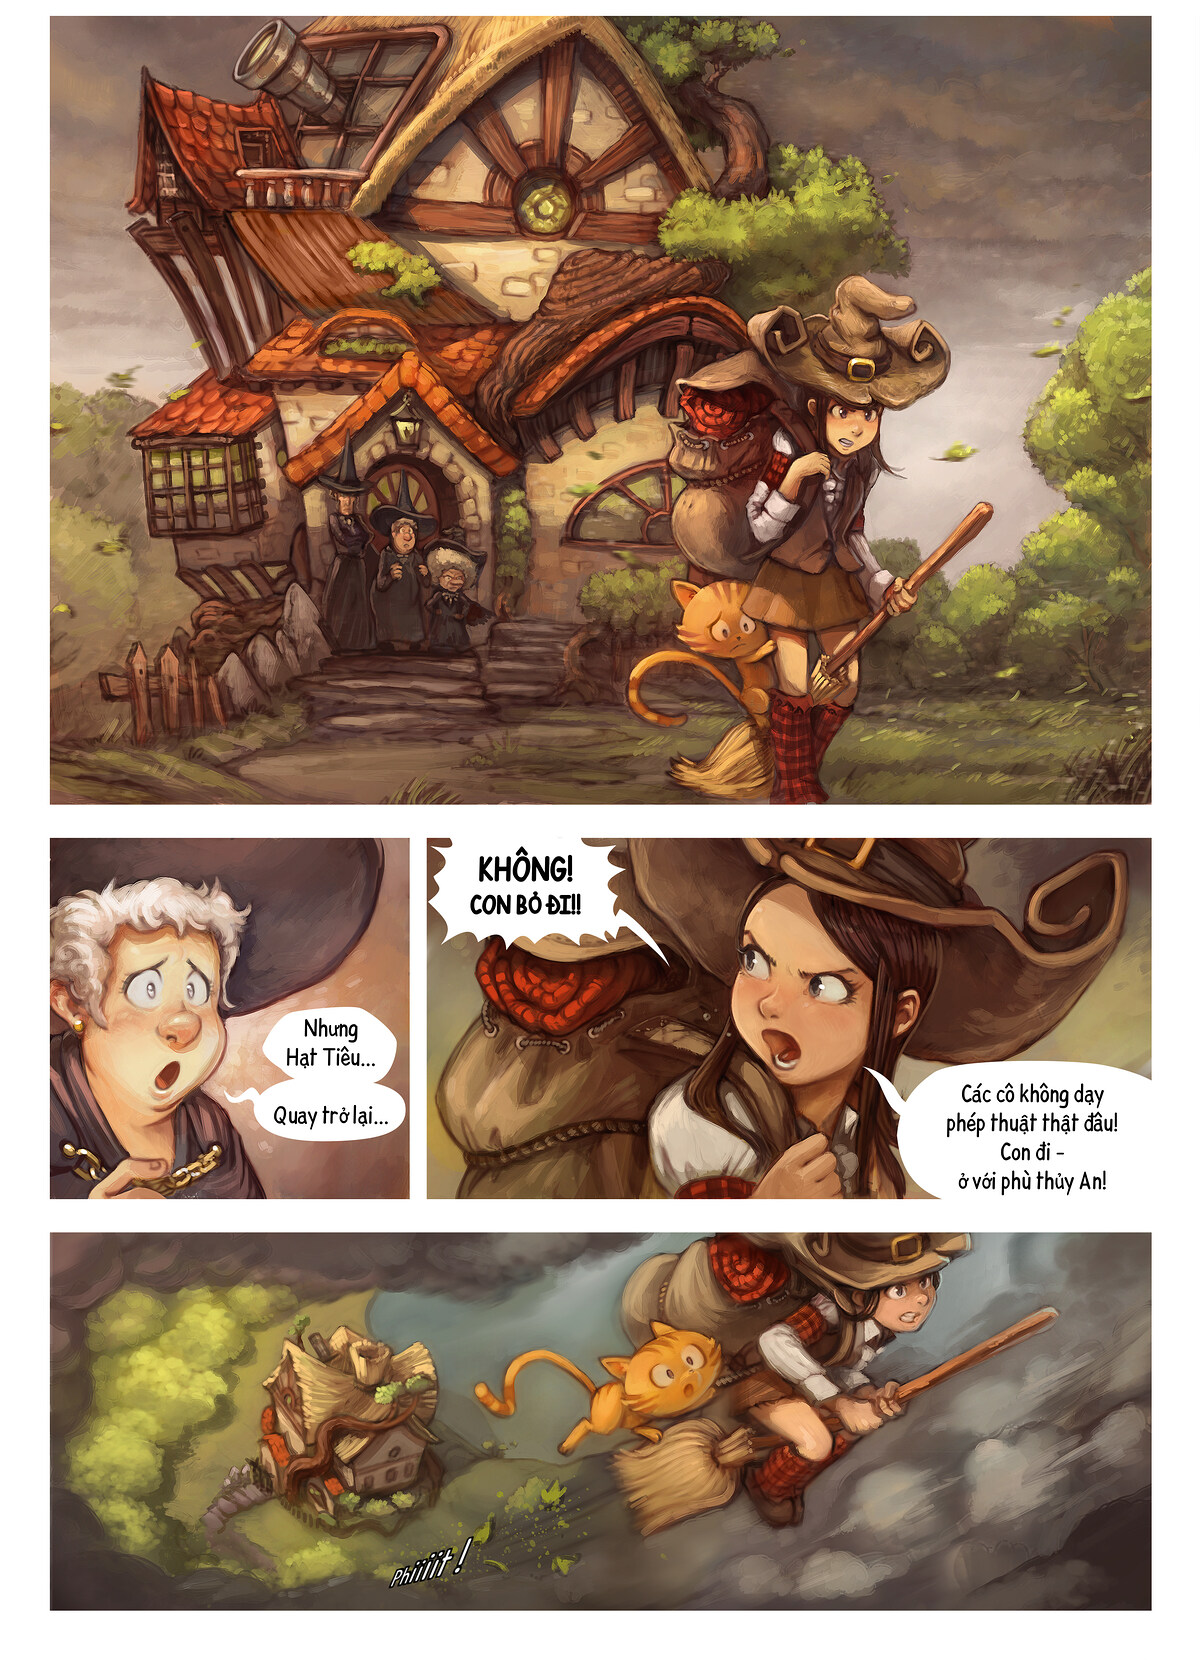 A webcomic page of Pepper&Carrot, Tập 17 [vi], trang 1